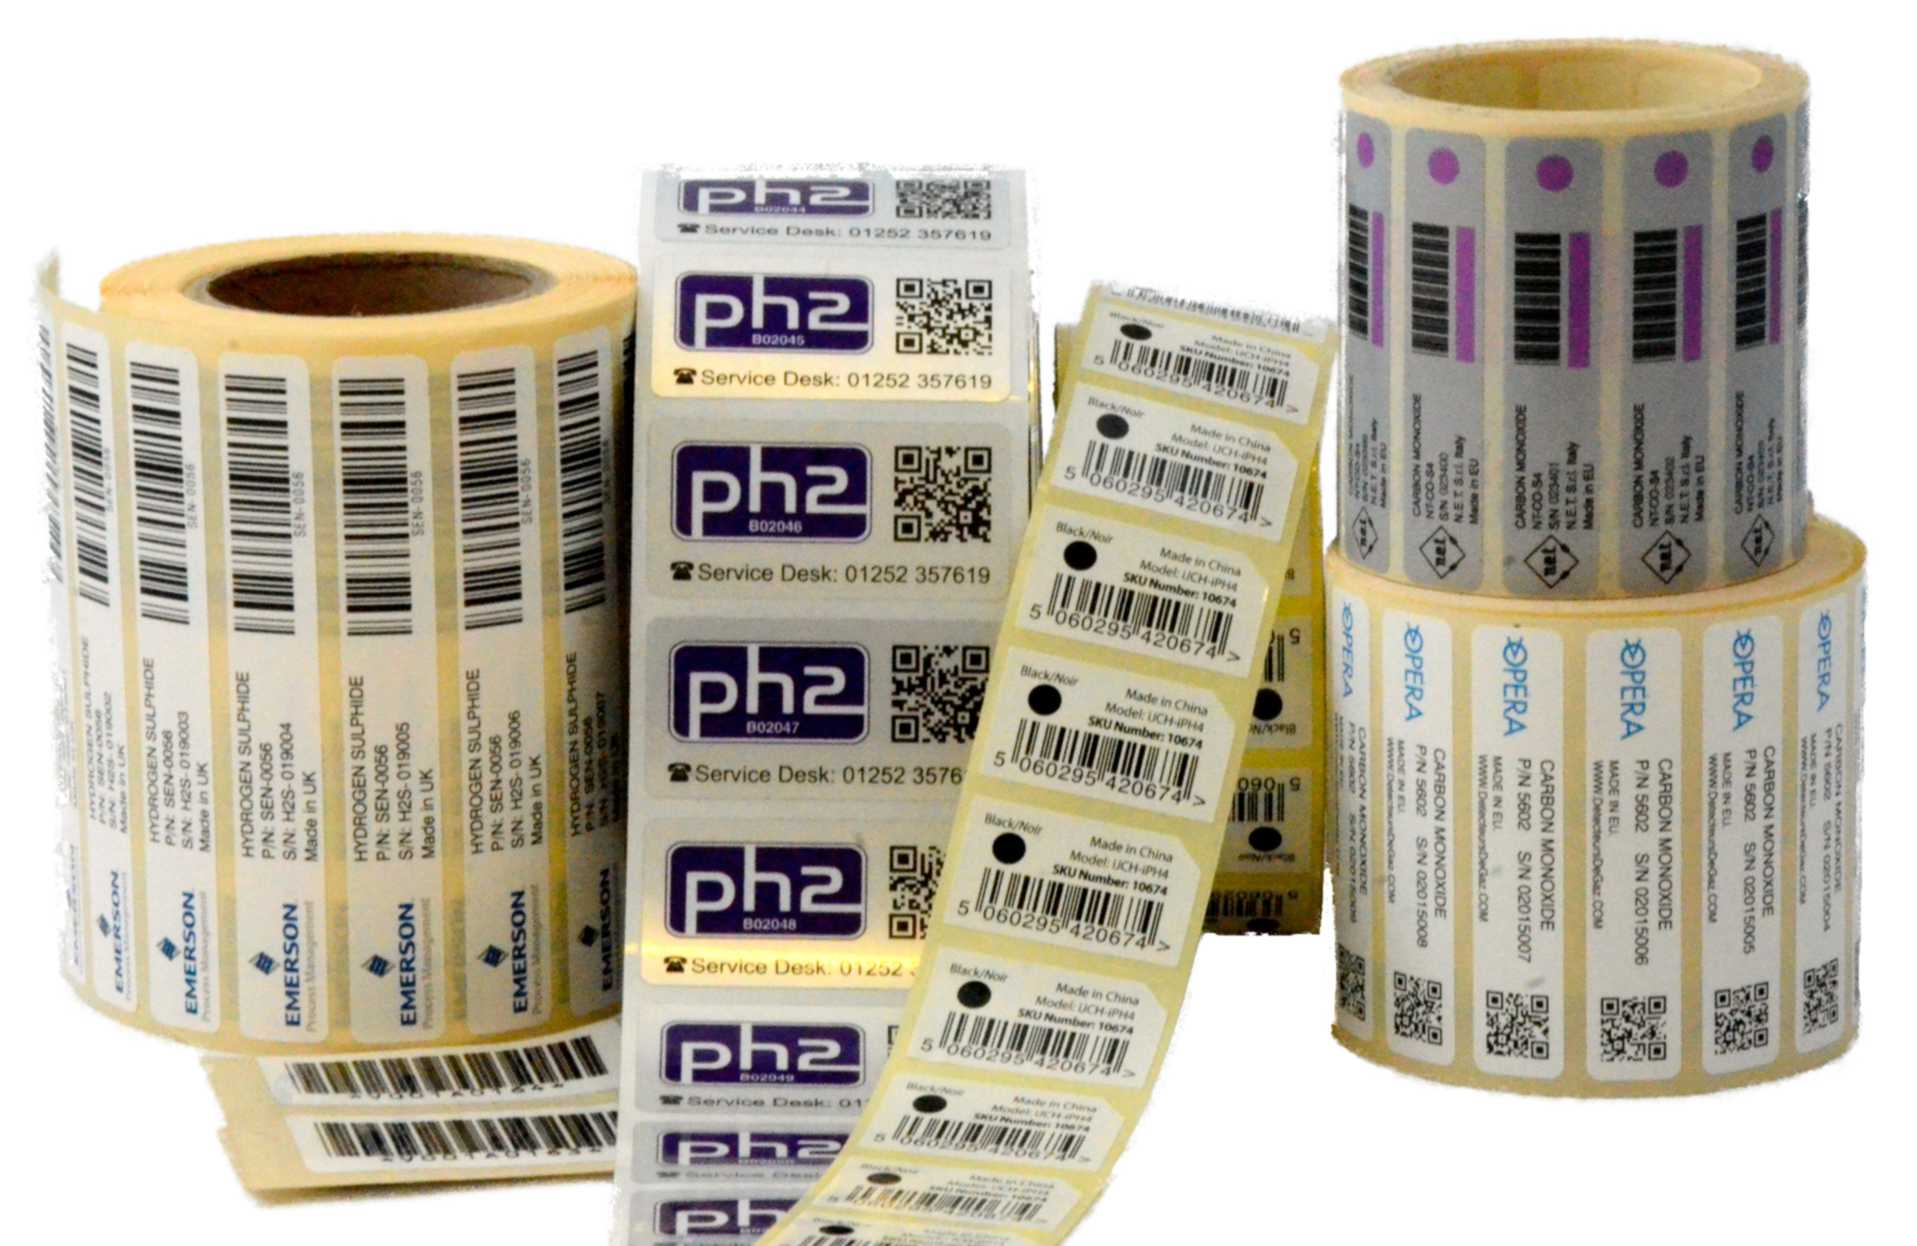 Bar codes and QR code labels